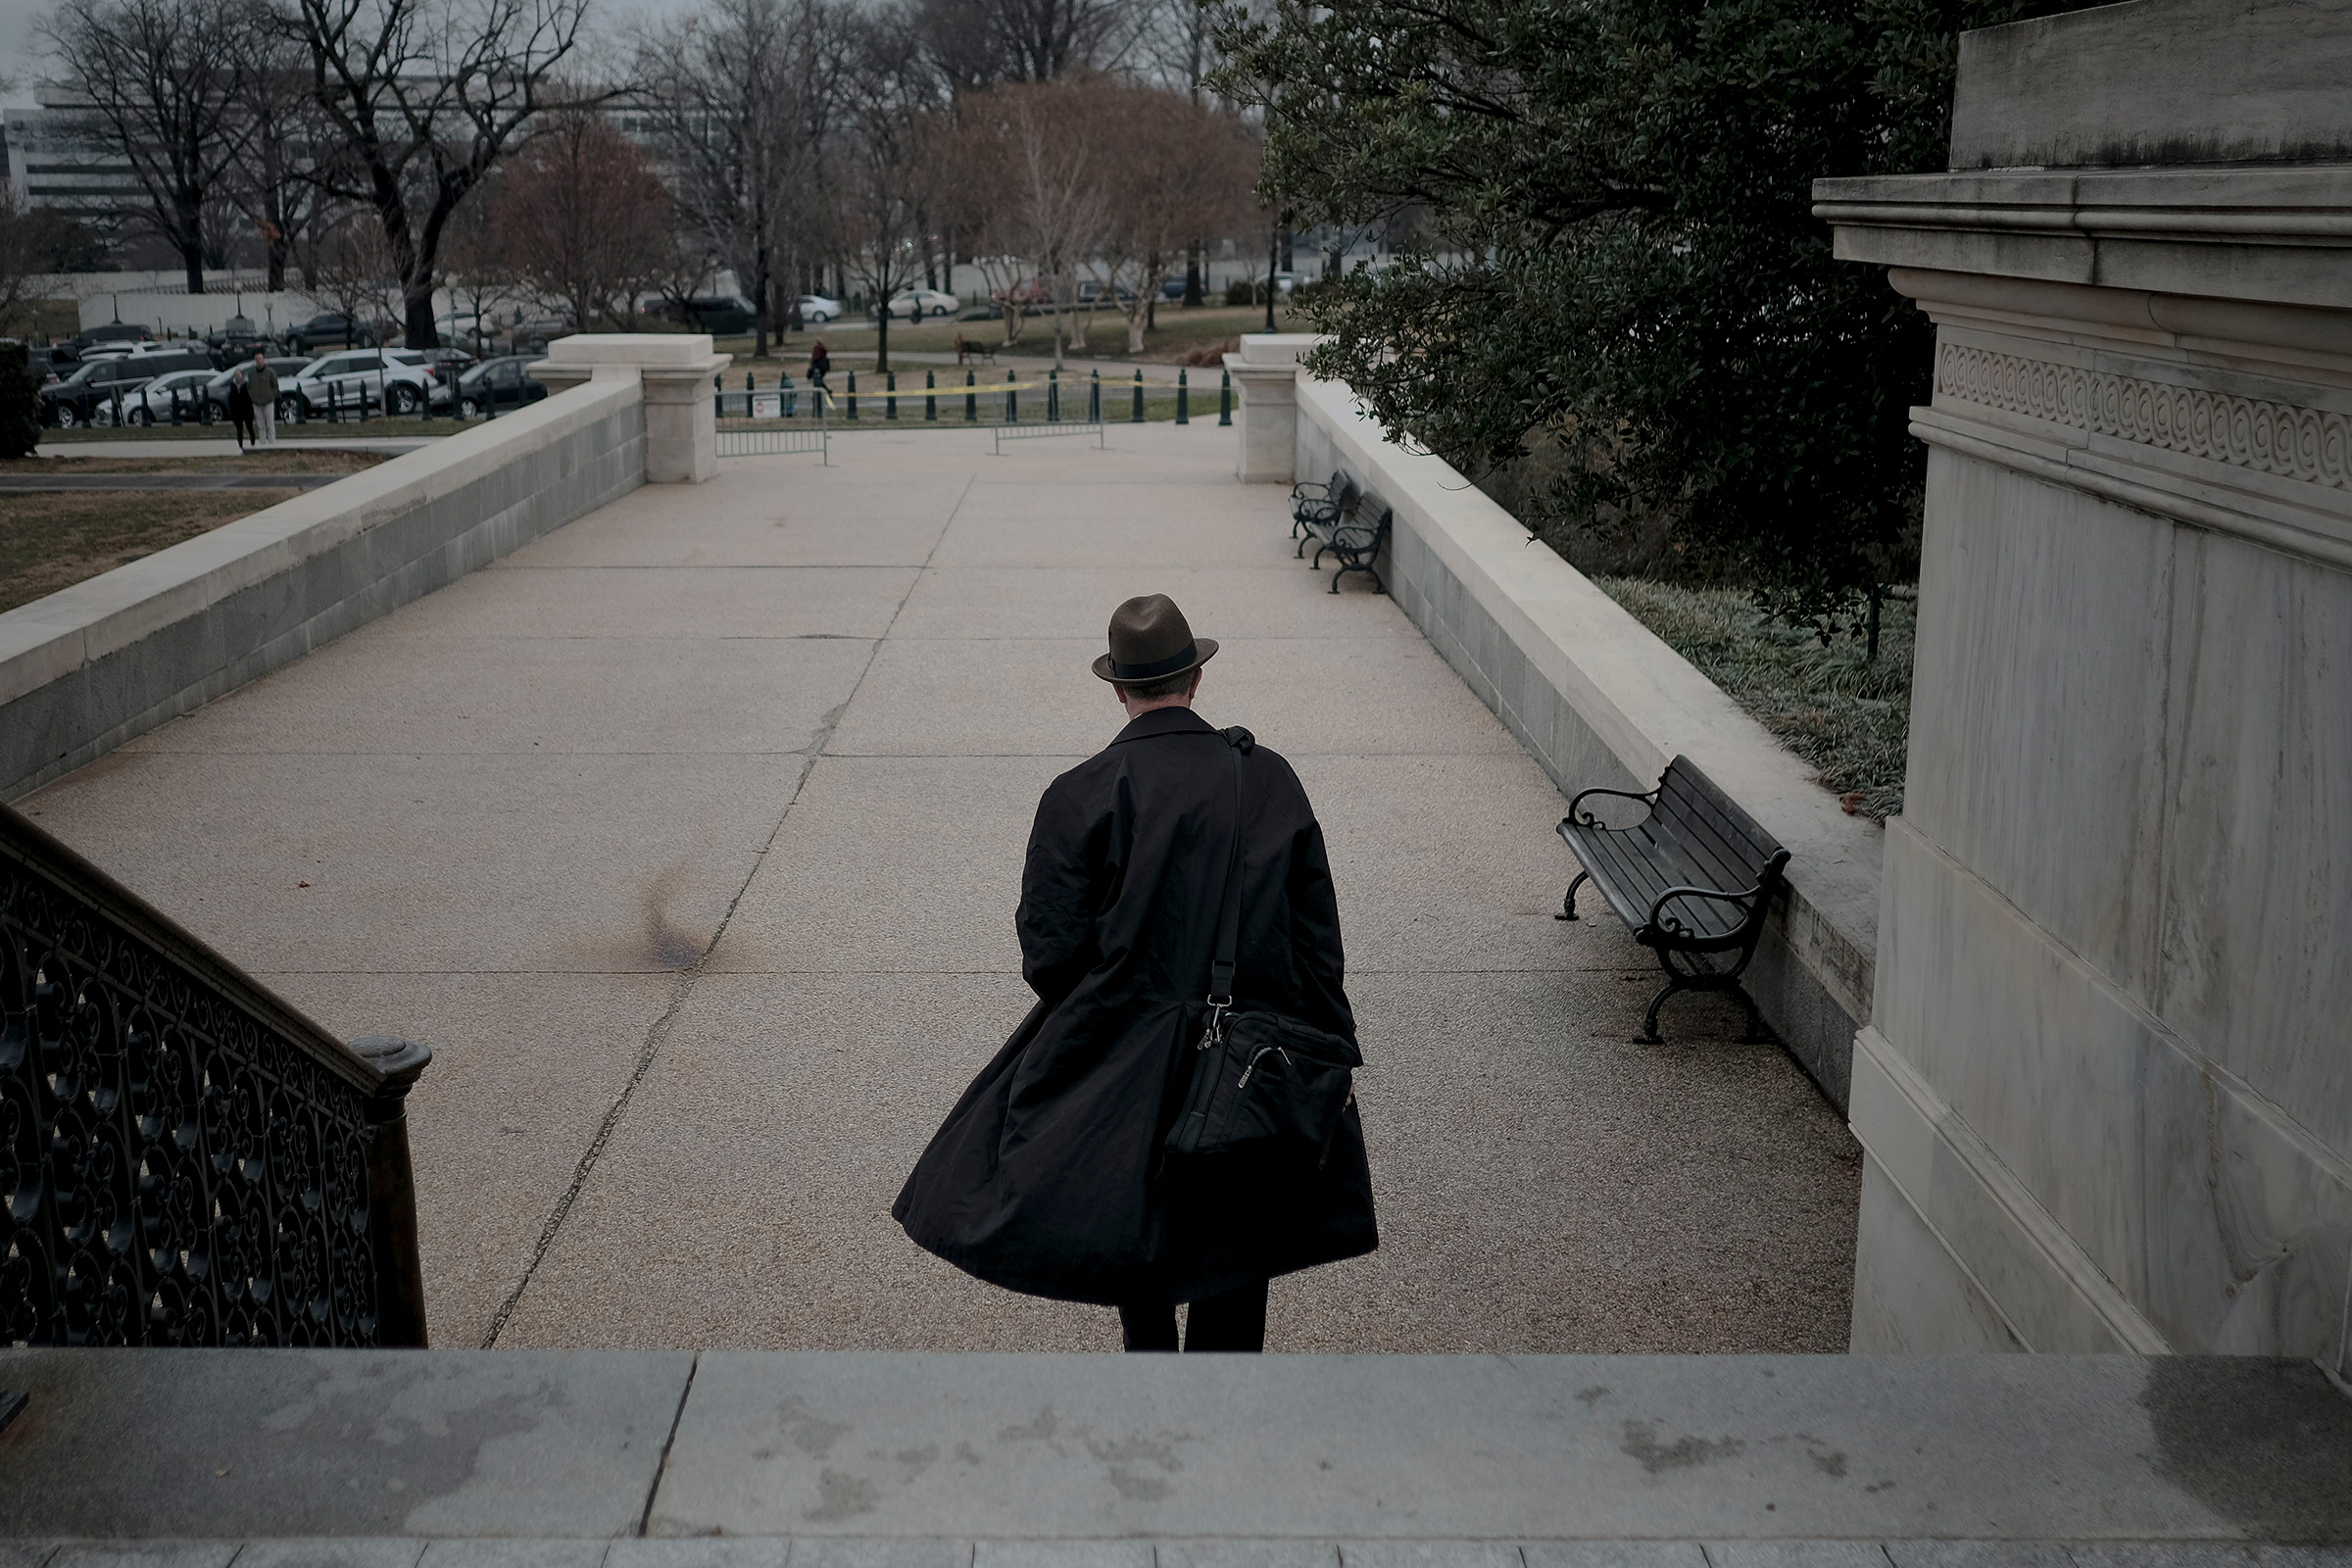 White House legislative director Eric Ueland leaves the Capitol after the impeachment trial in Washington, D.C., on Jan. 25, 2020.